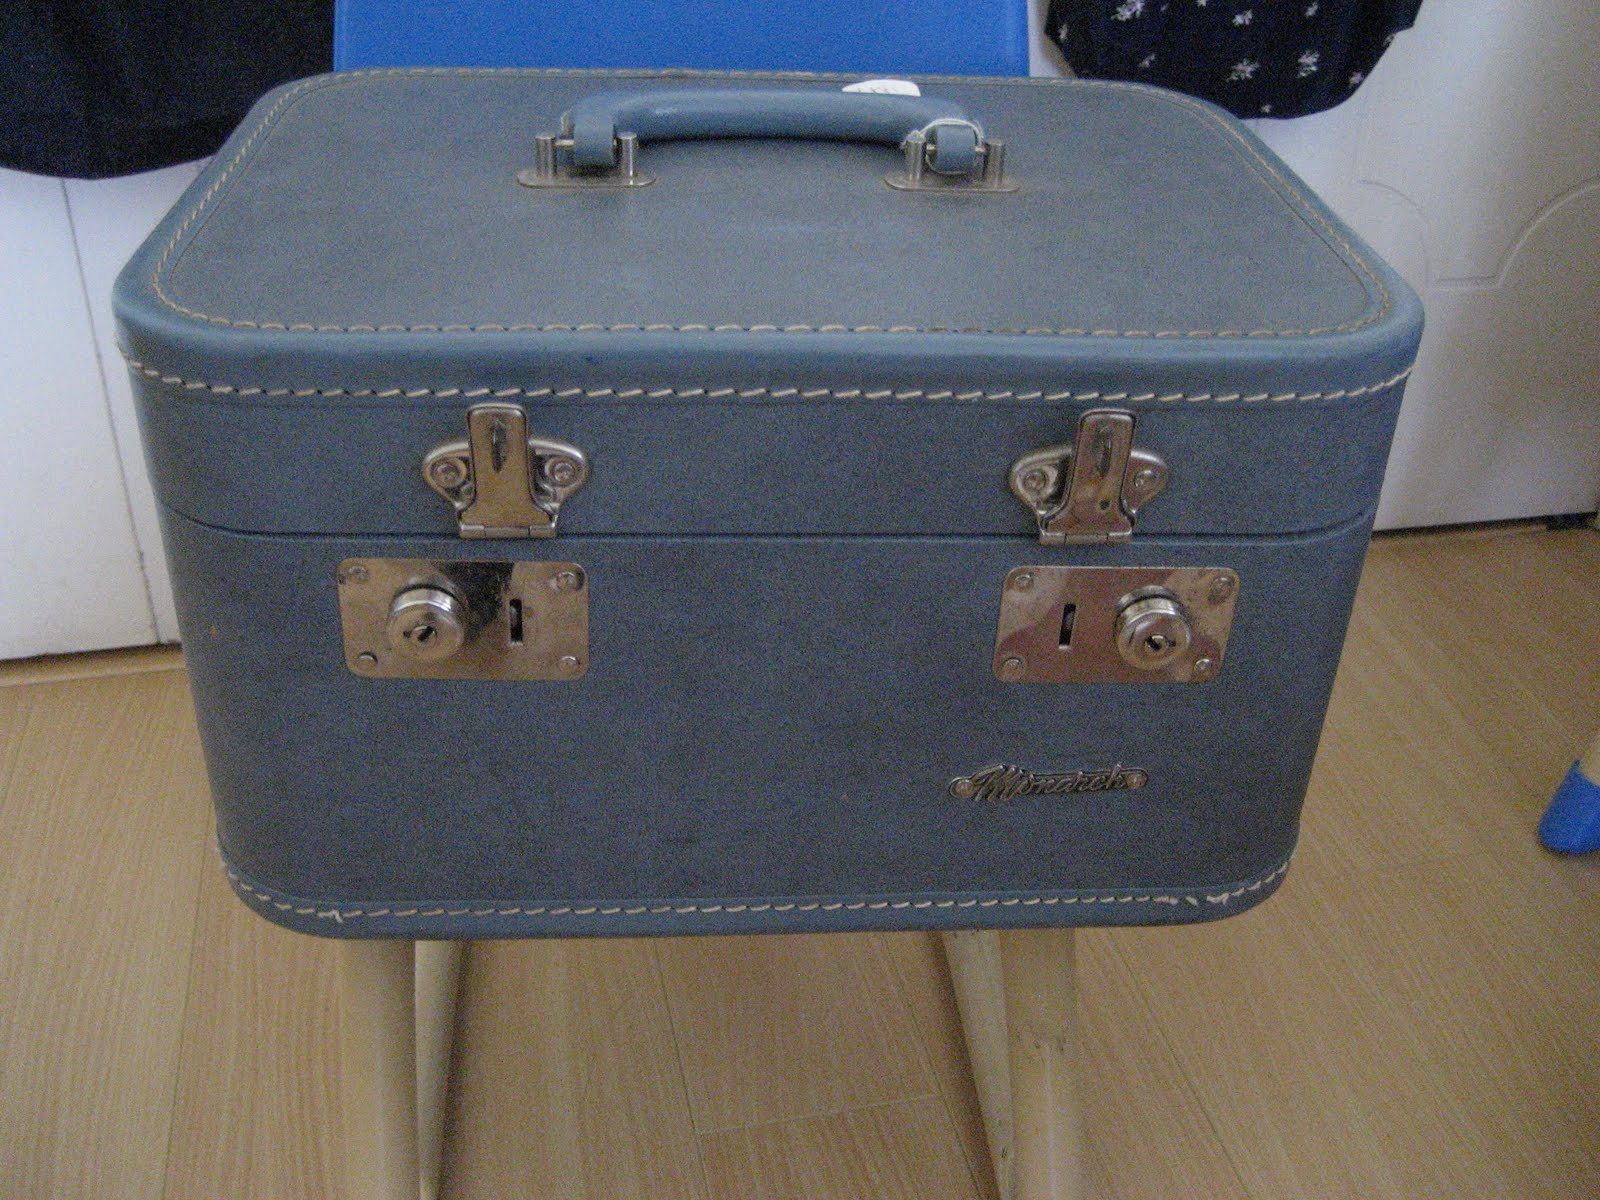 How To Reupholster A Vintage Suitcase To Use For Wedding